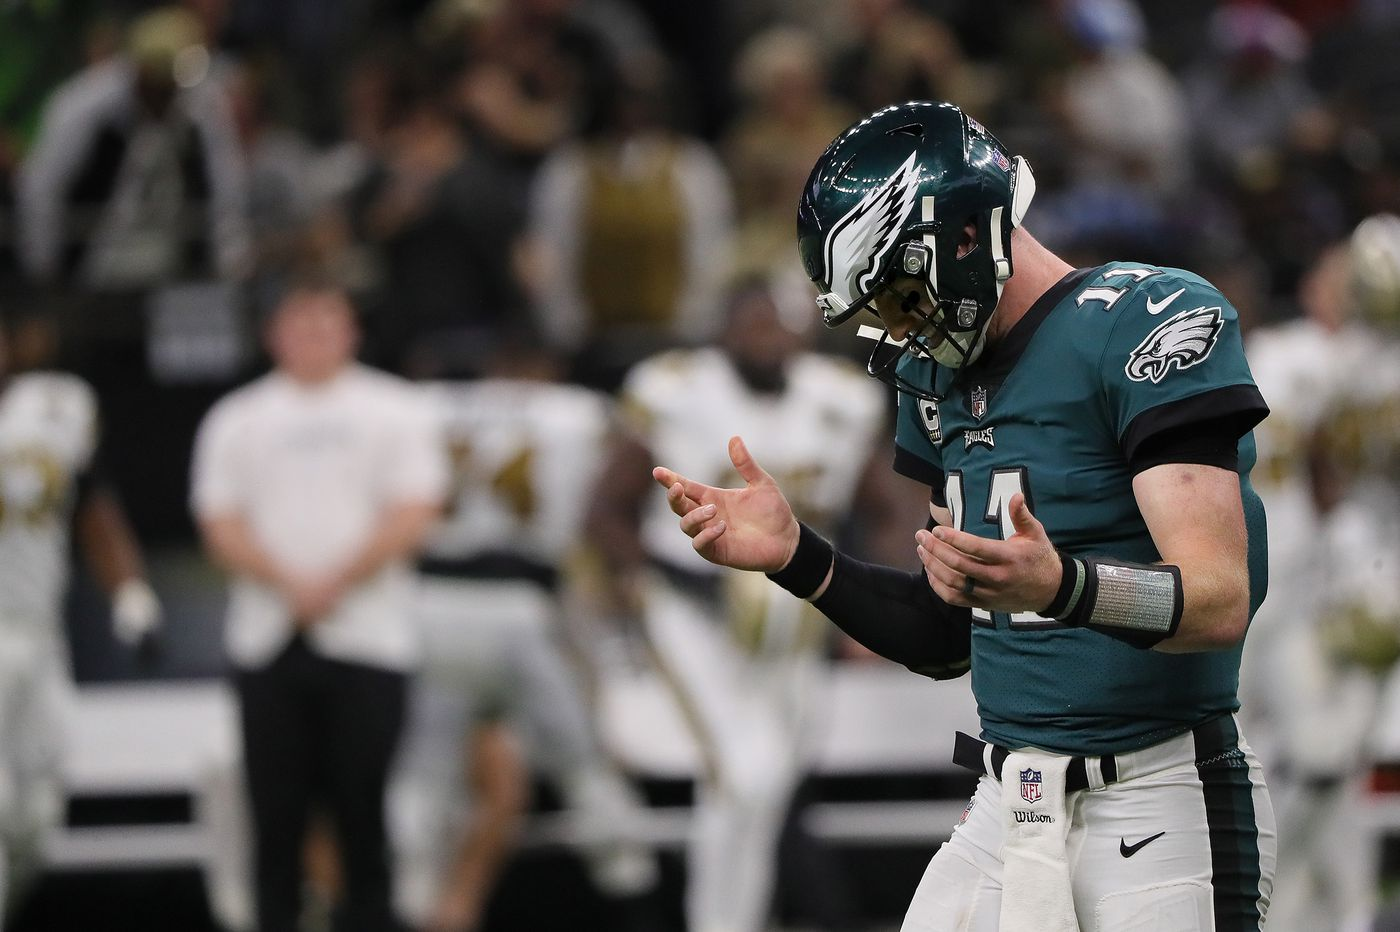 How will Eagles quarterback Carson Wentz rebound from the worst game of his career?